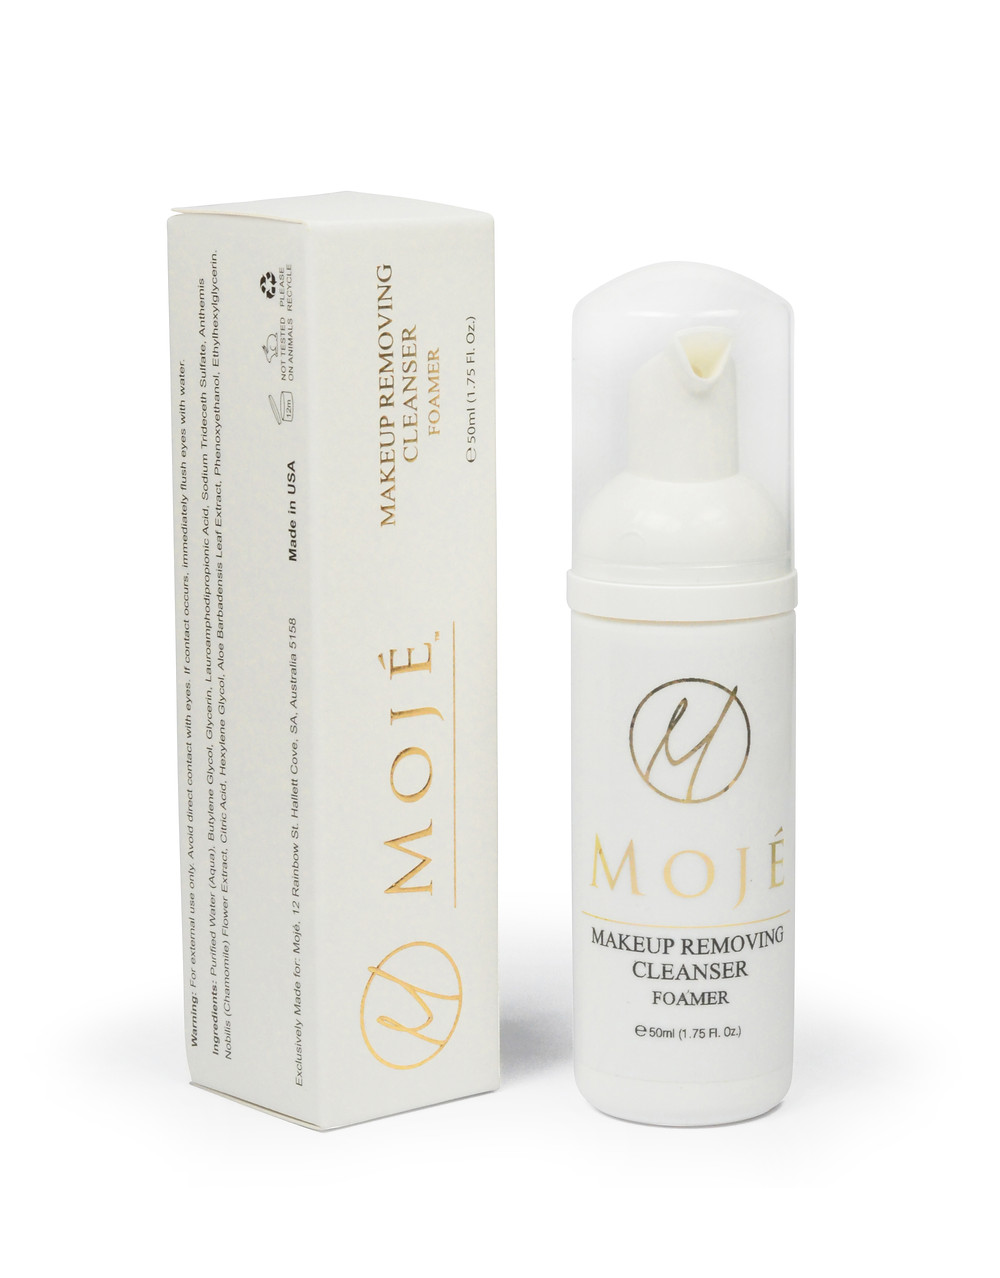 Makeup Removing Cleanser (foamer), used as an aftercare for eyelash extensions, in Gold Coast